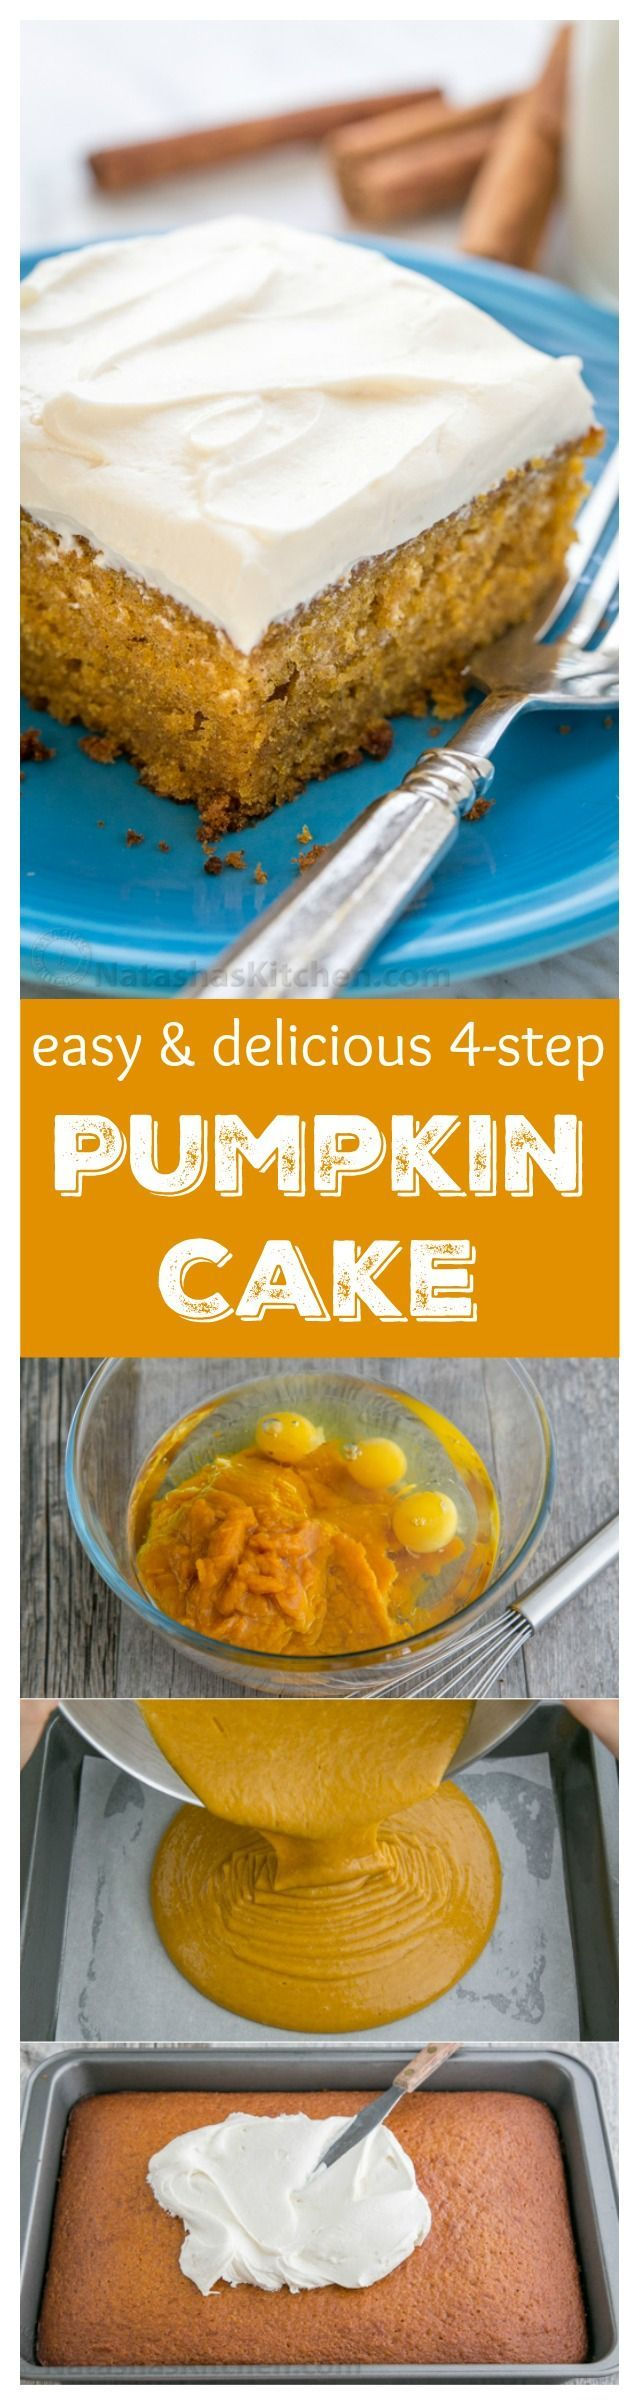 This Easy Pumpkin Cake is done in 4 steps (with frosting)! This pumpkin cake recipe has a  moist, delicate crumb and marshmallow-like whipped cream cheese frosting is irresistible!